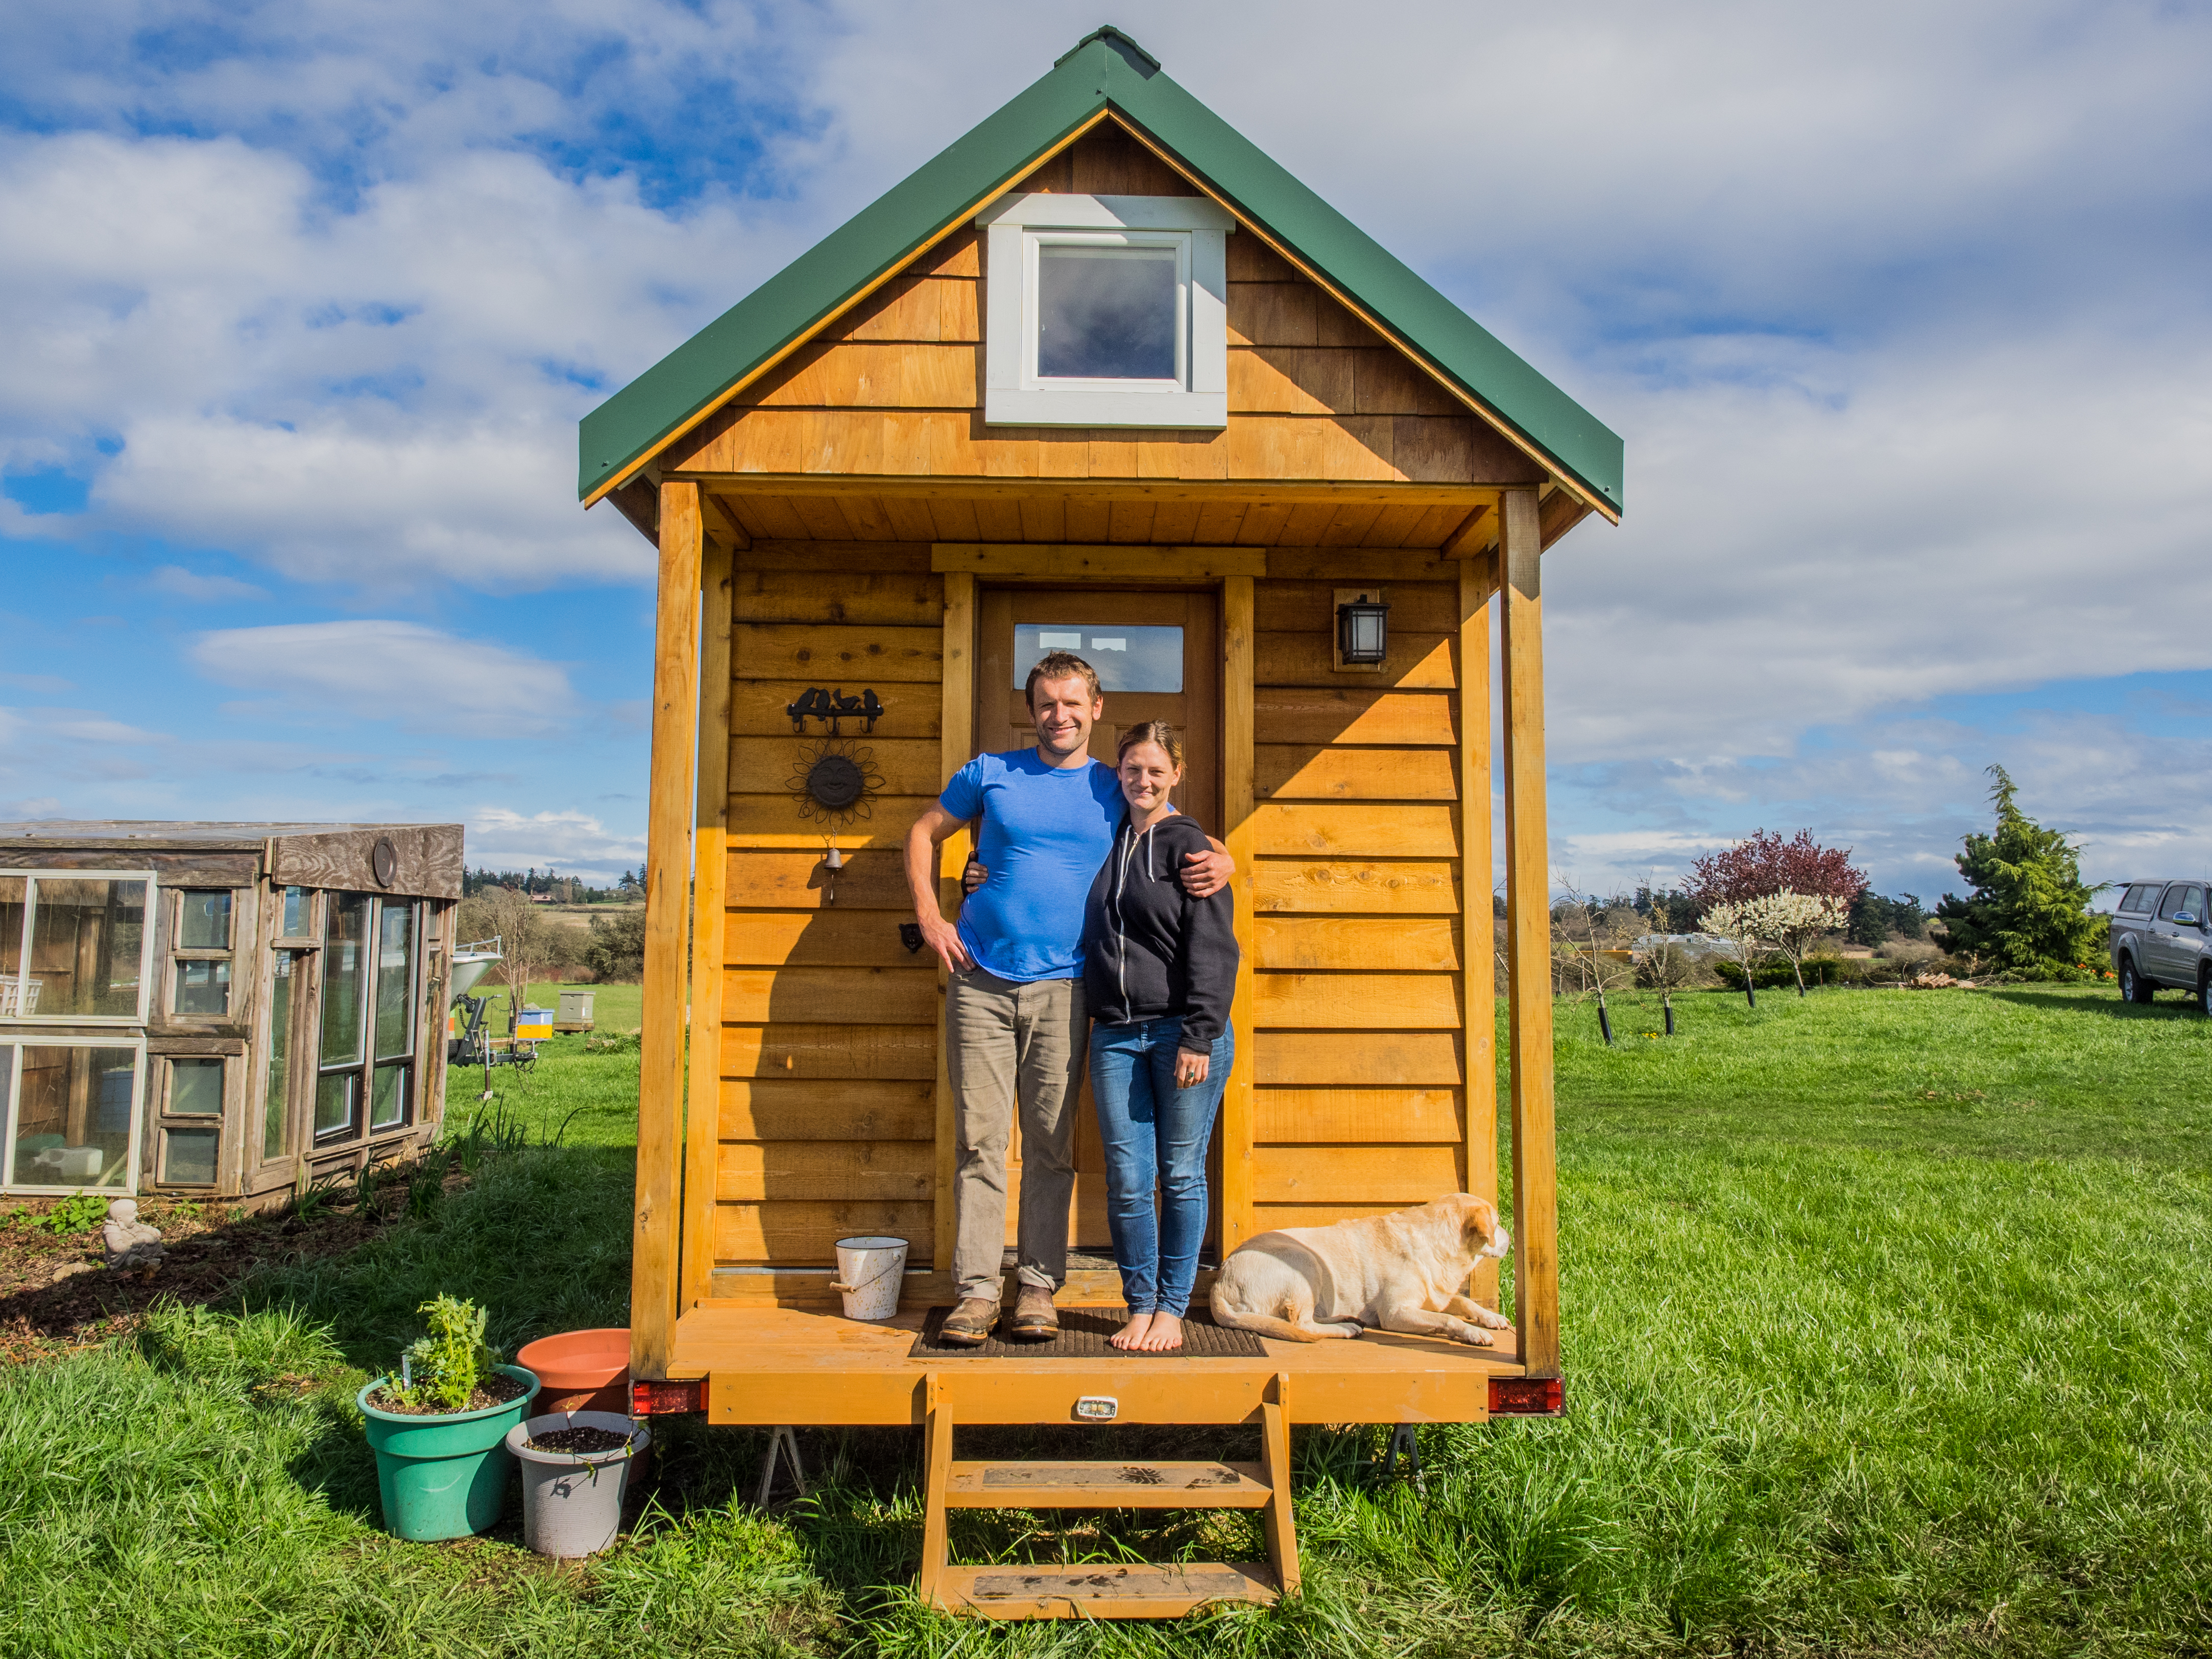 Could You Live U0027Tinyu0027? See How A Seattle Couple Found Room For Their Dreams